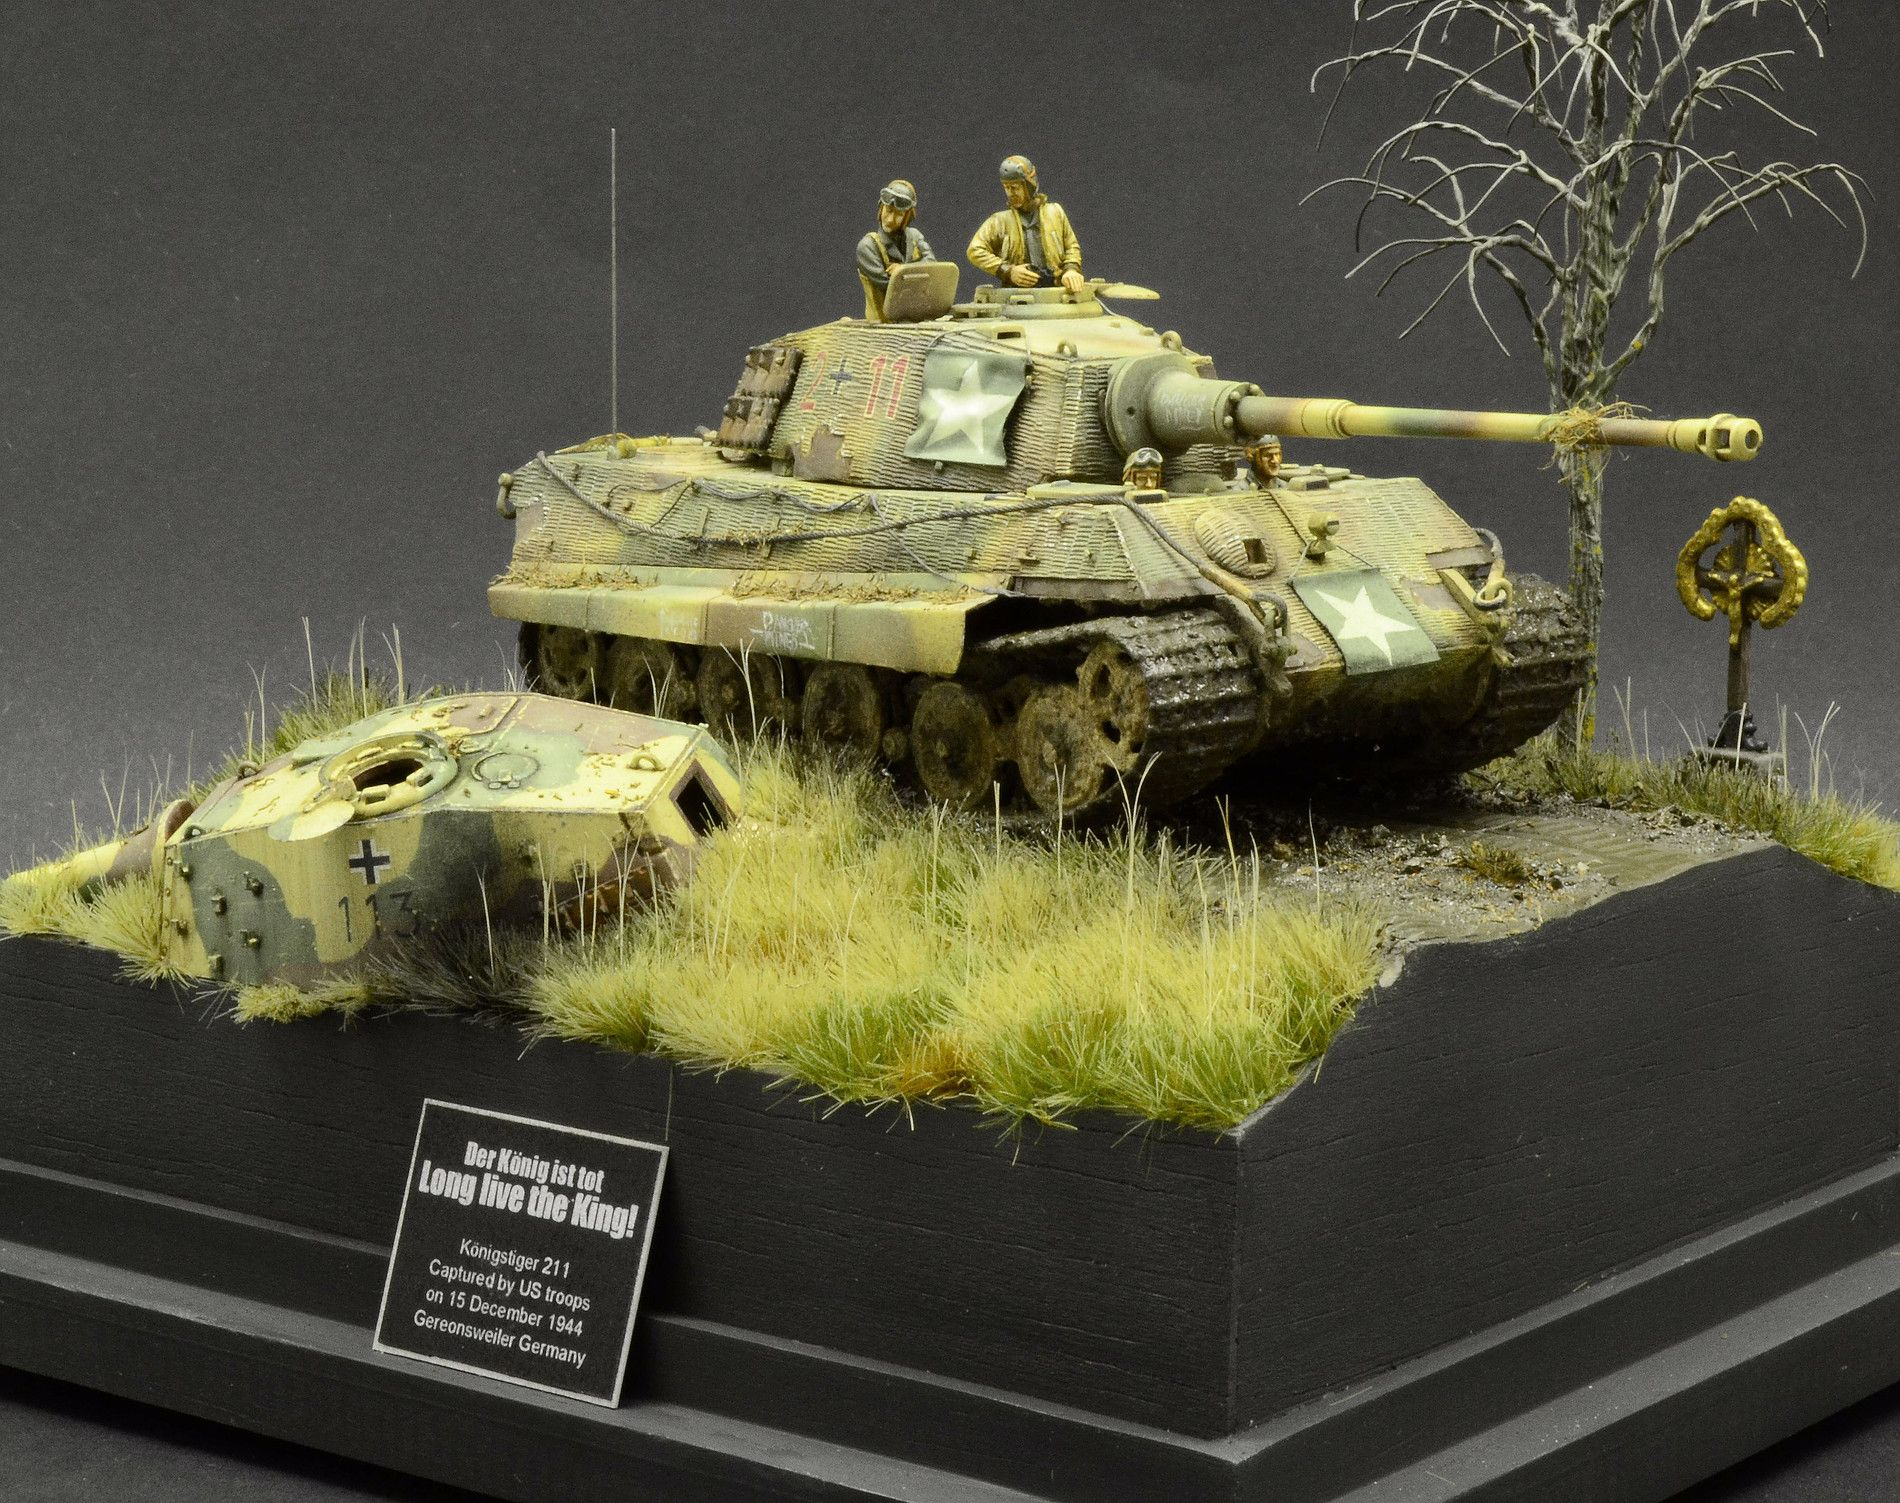 Master model maker military scale diorama king tiger for Scale model ideas